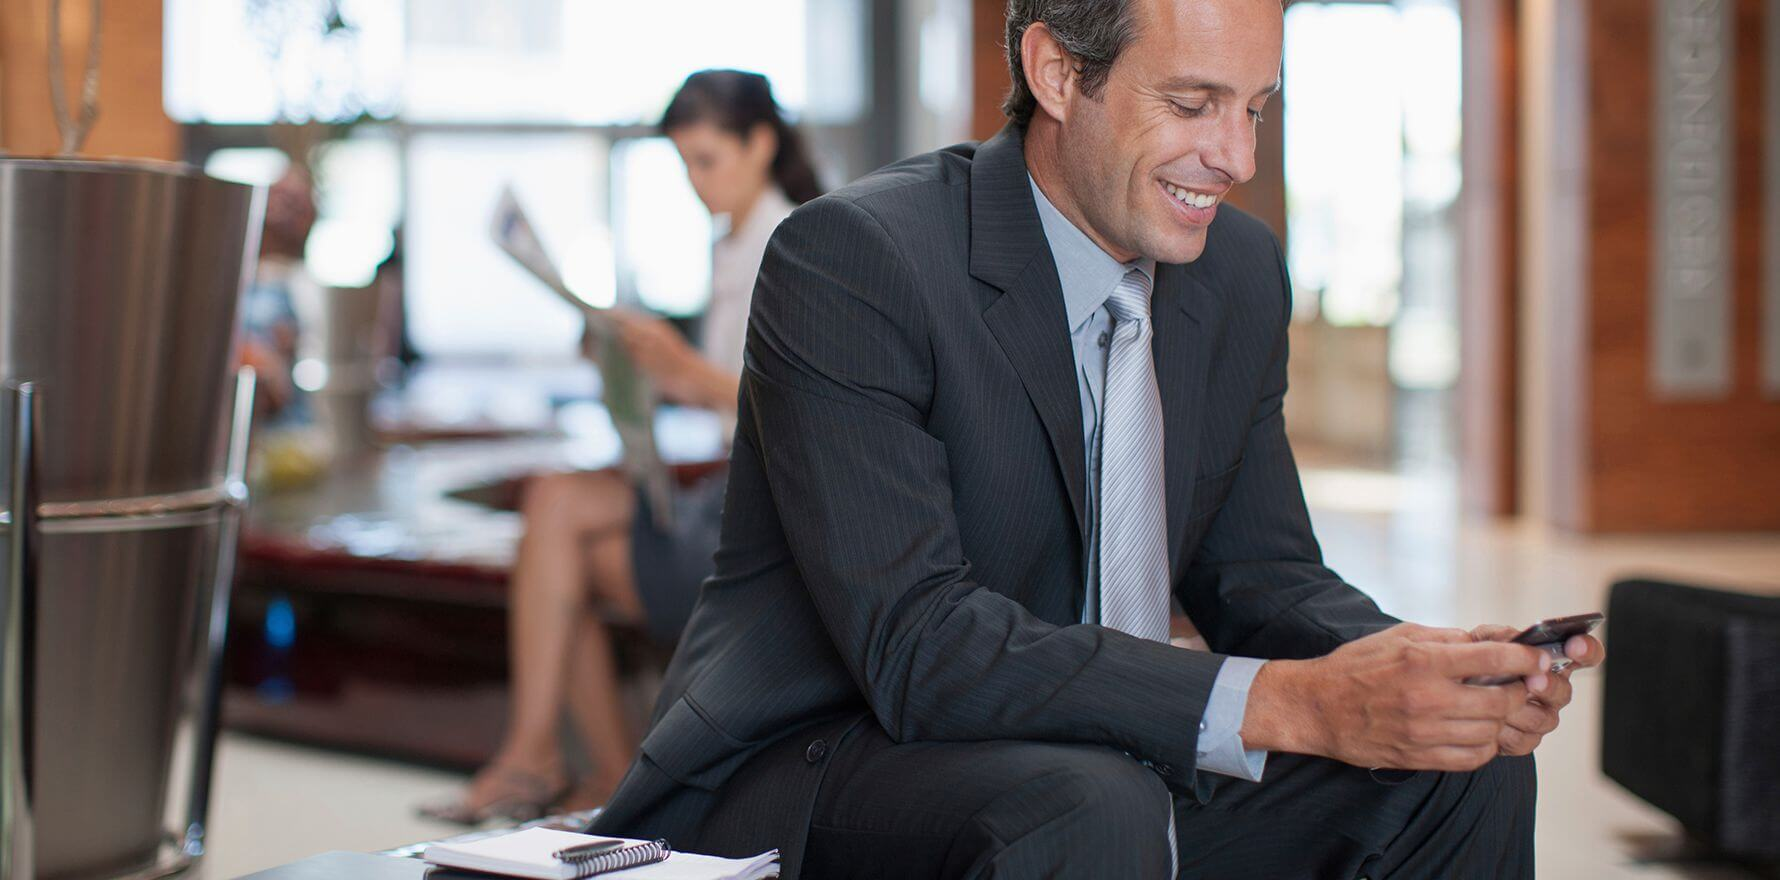 Man smiling at phone about Voice & Data Services For Business available